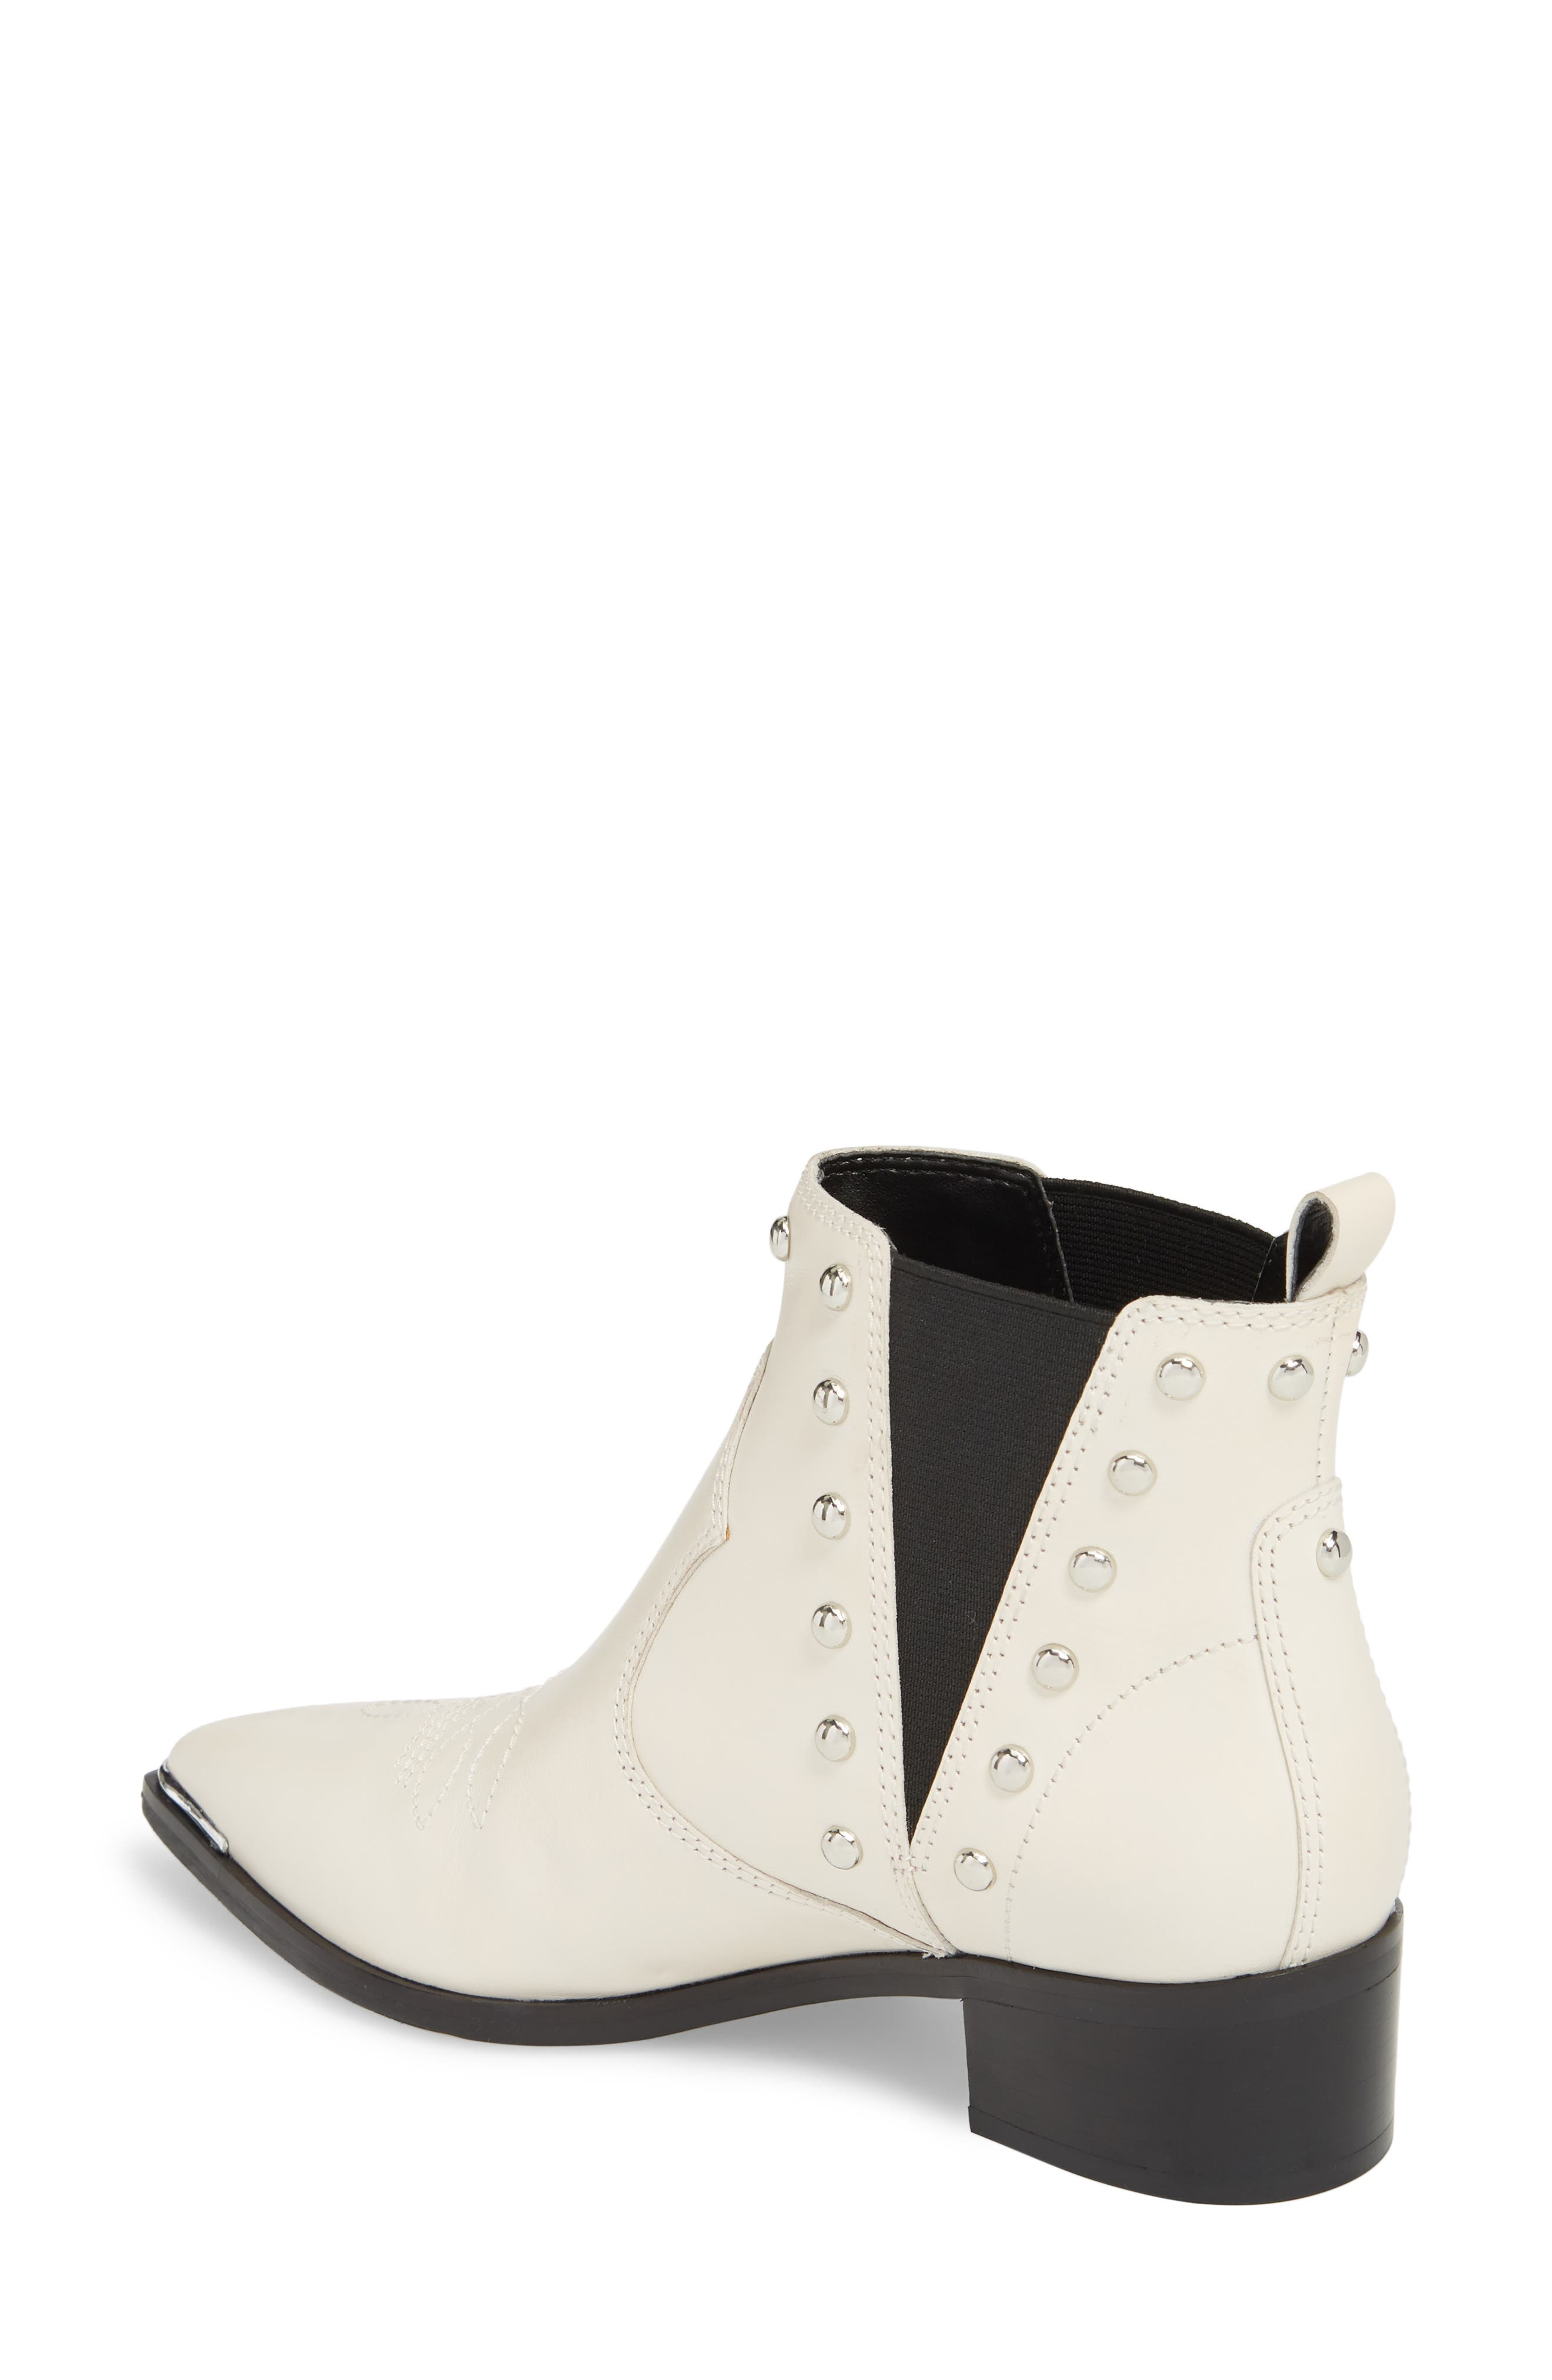 Yente Chelsea Boot,                             Alternate thumbnail 2, color,                             IVORY LEATHER